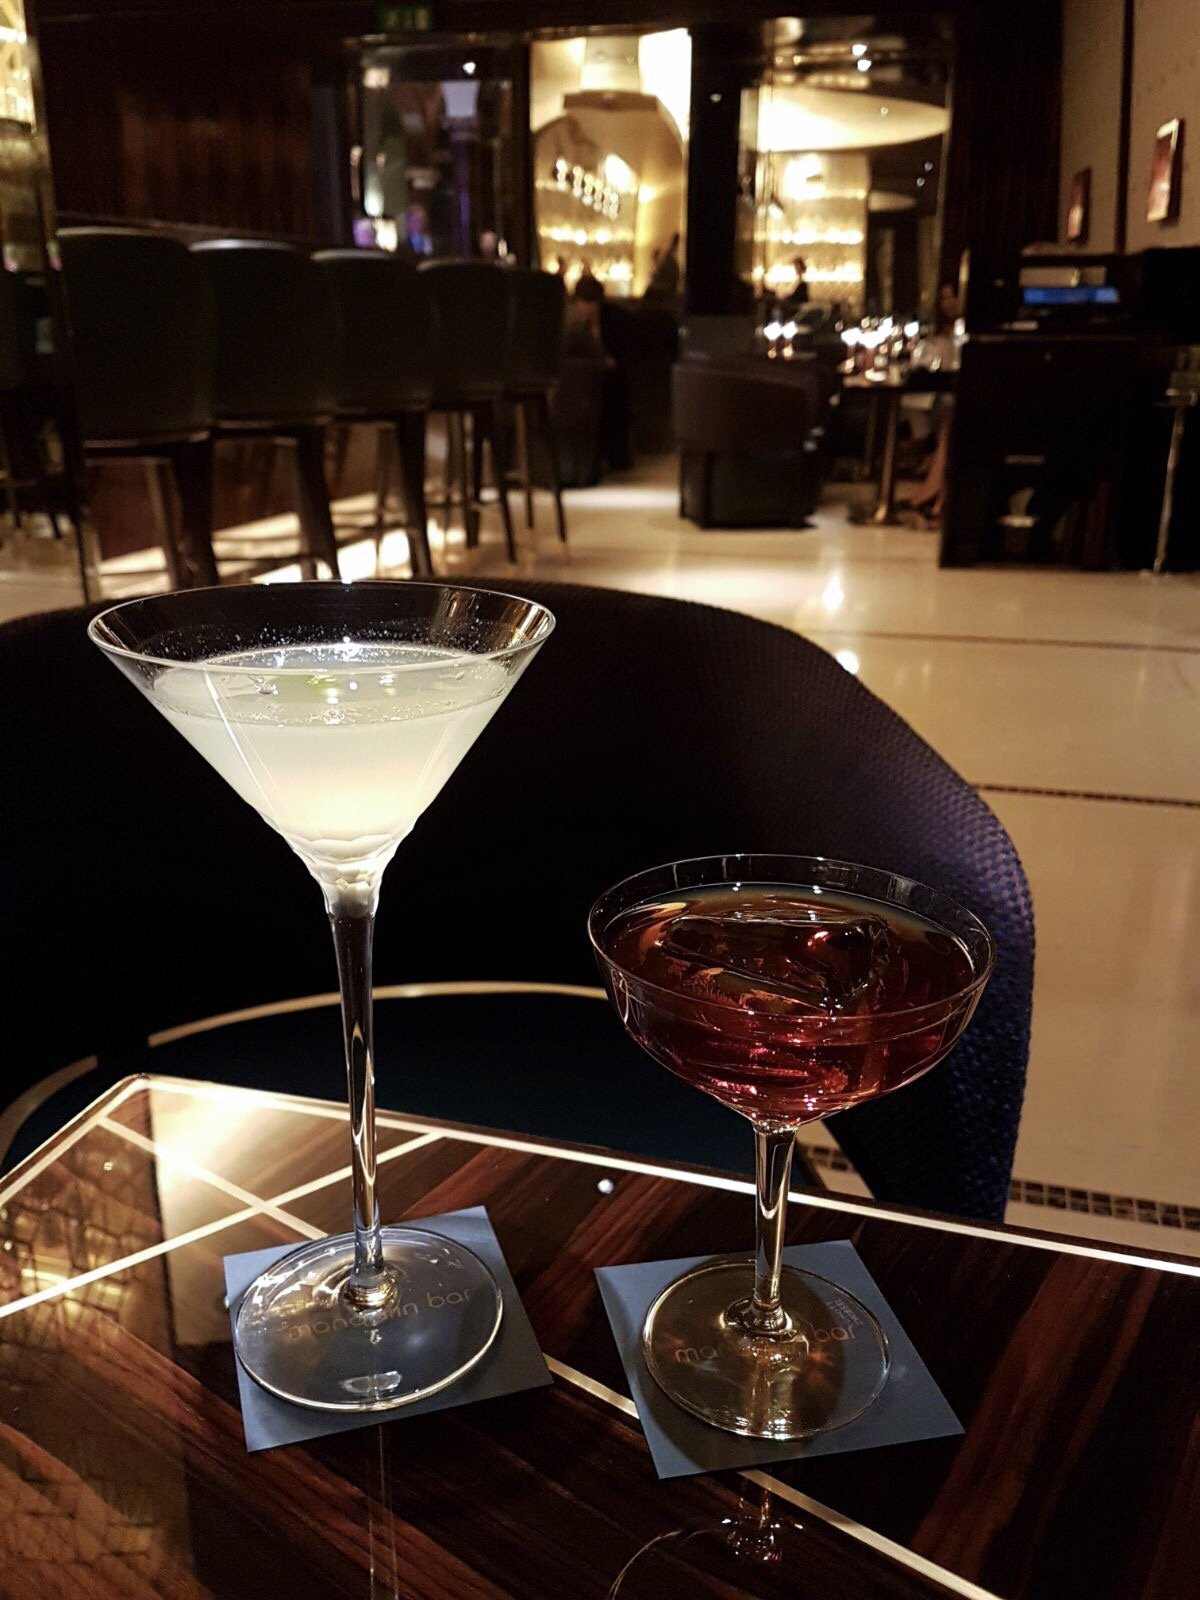 Date night at The Mandarin Bar, Mandarin Oriental